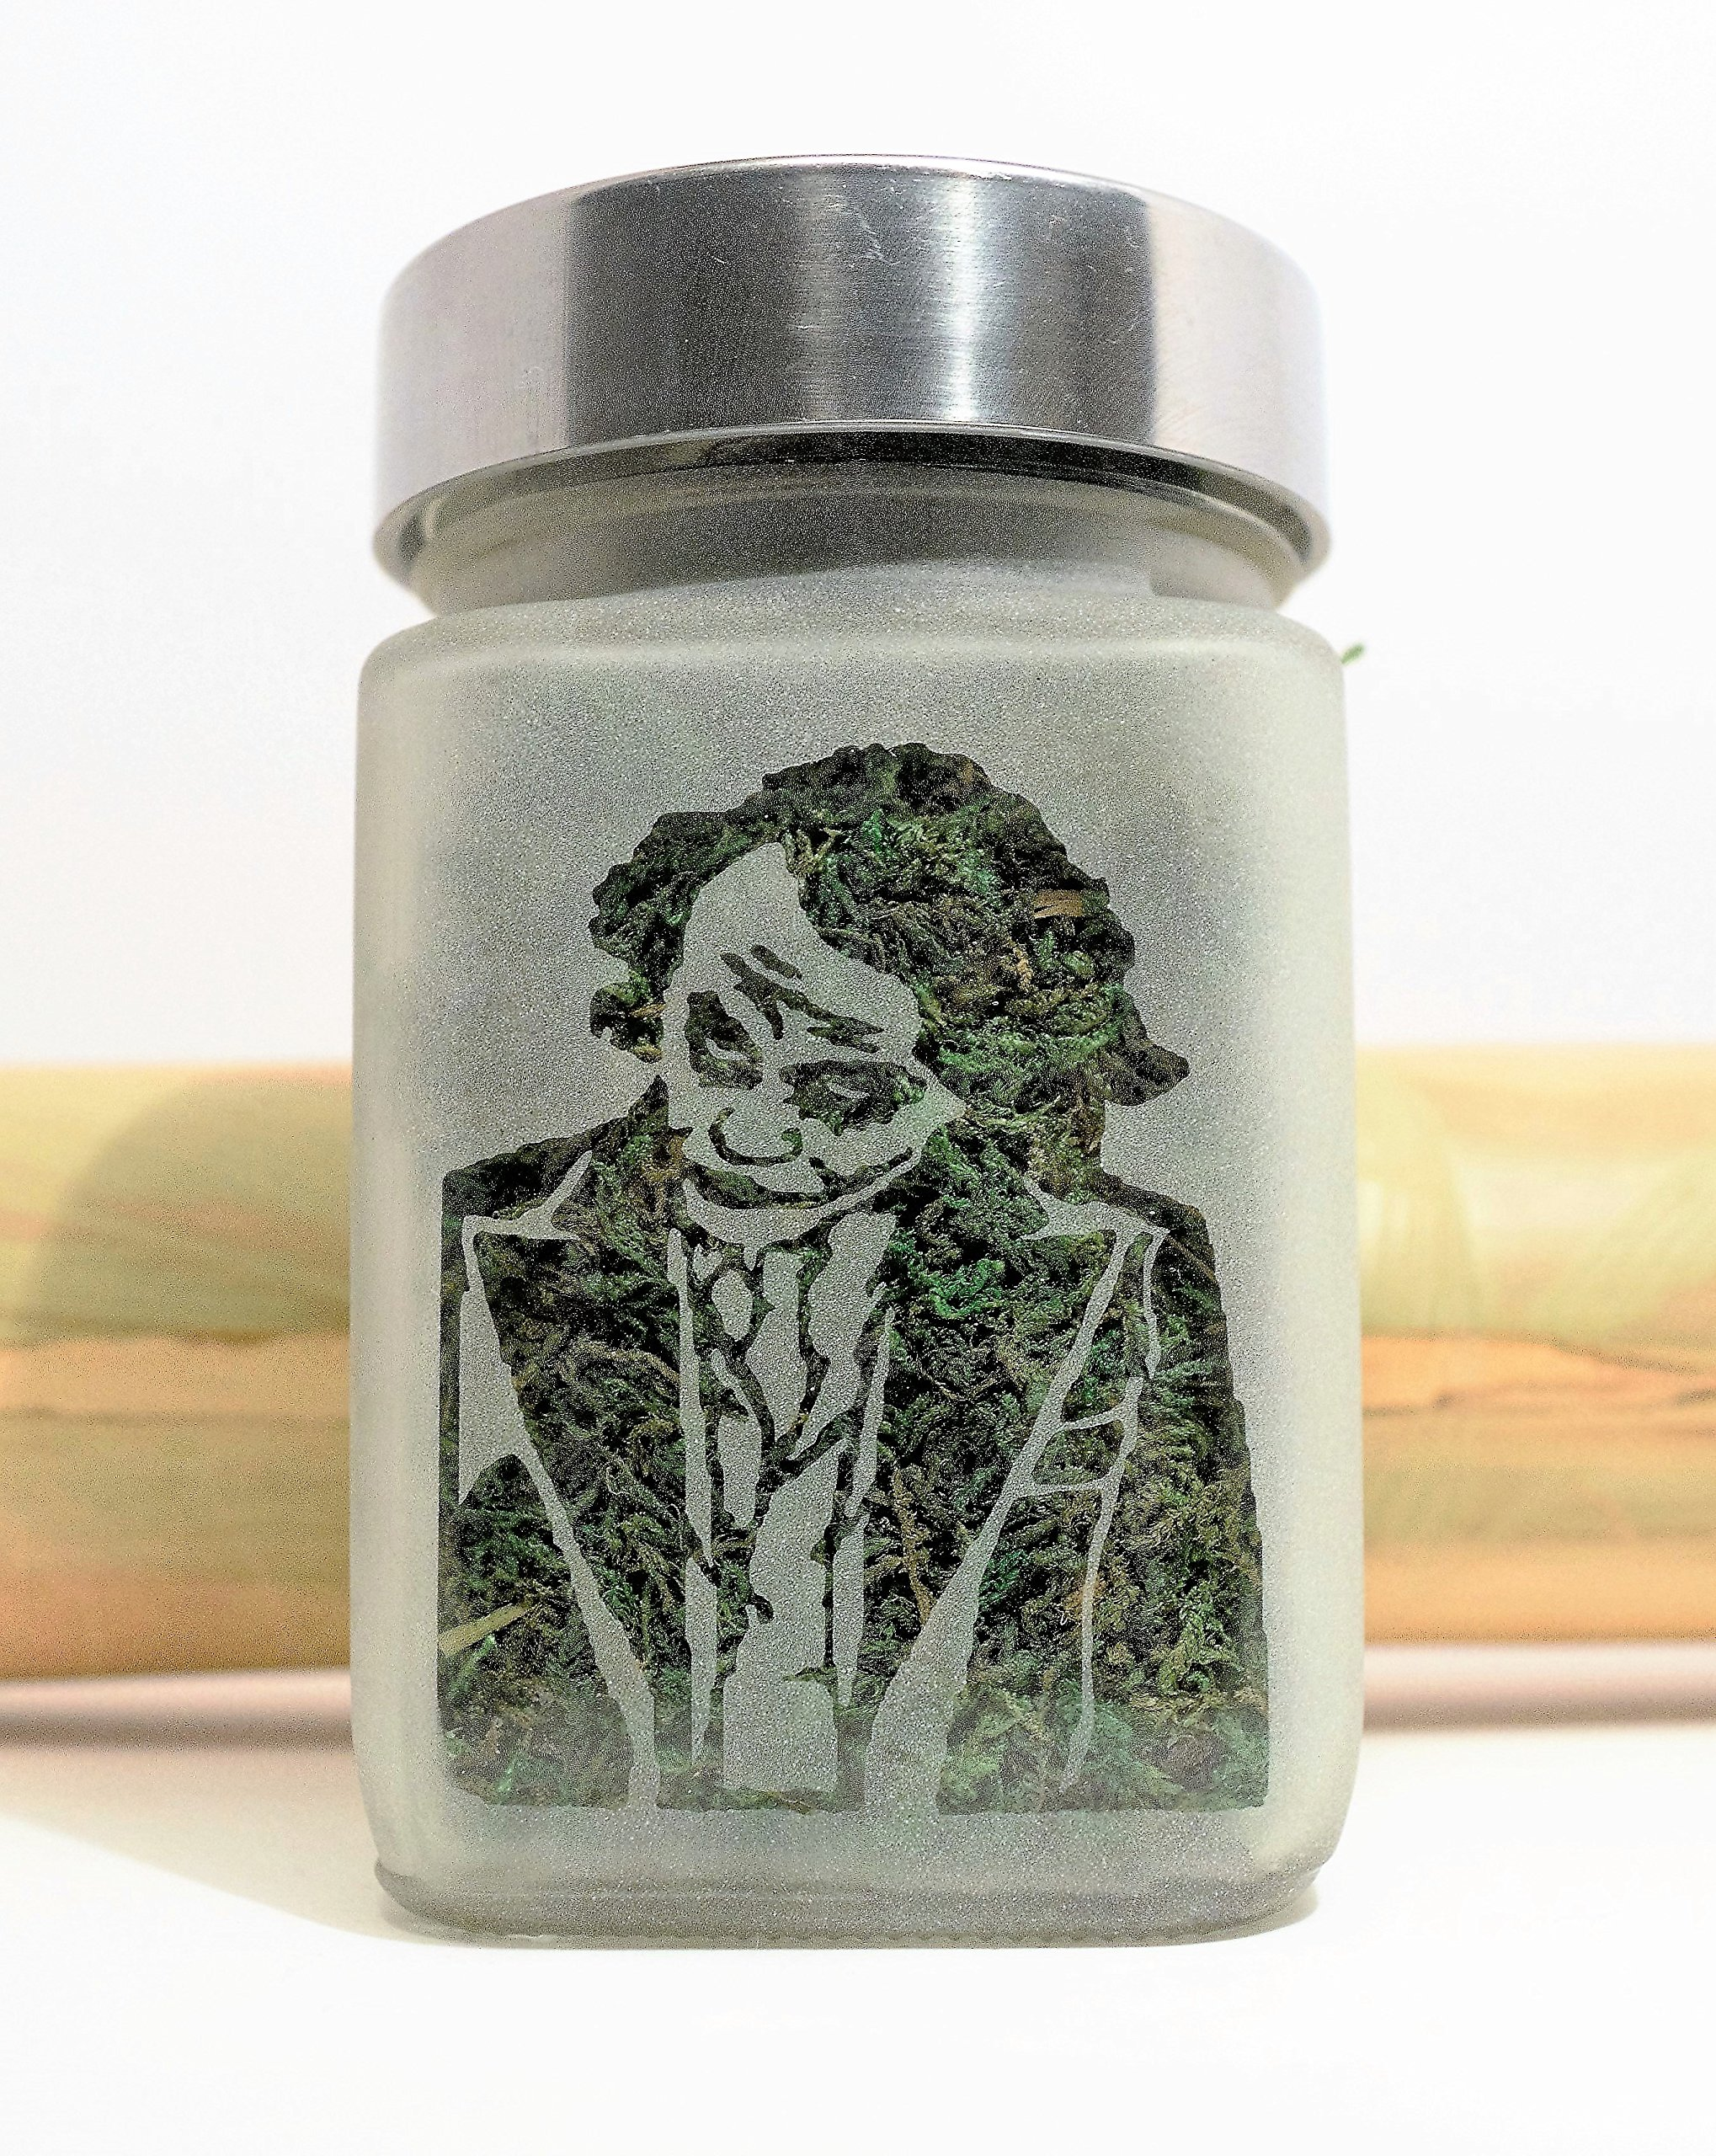 Batman Joker Stash Jar - 2''Wx3.5''T Weed Jar, Airtight, Smell Resistant - Holds 3/4 to 1oz